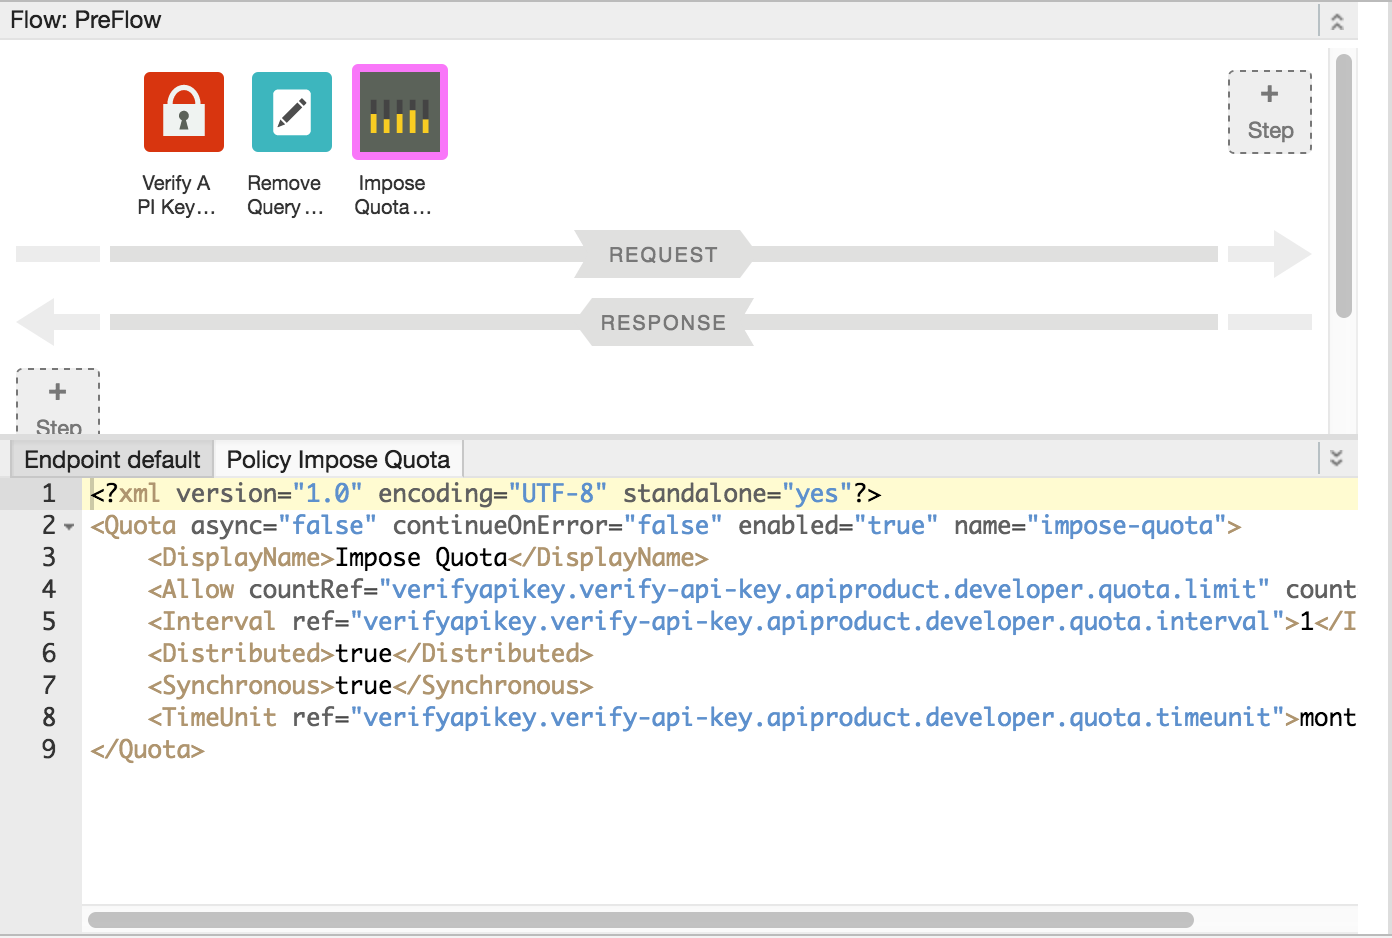 Policies in the PreFlow in the Designer and Code view